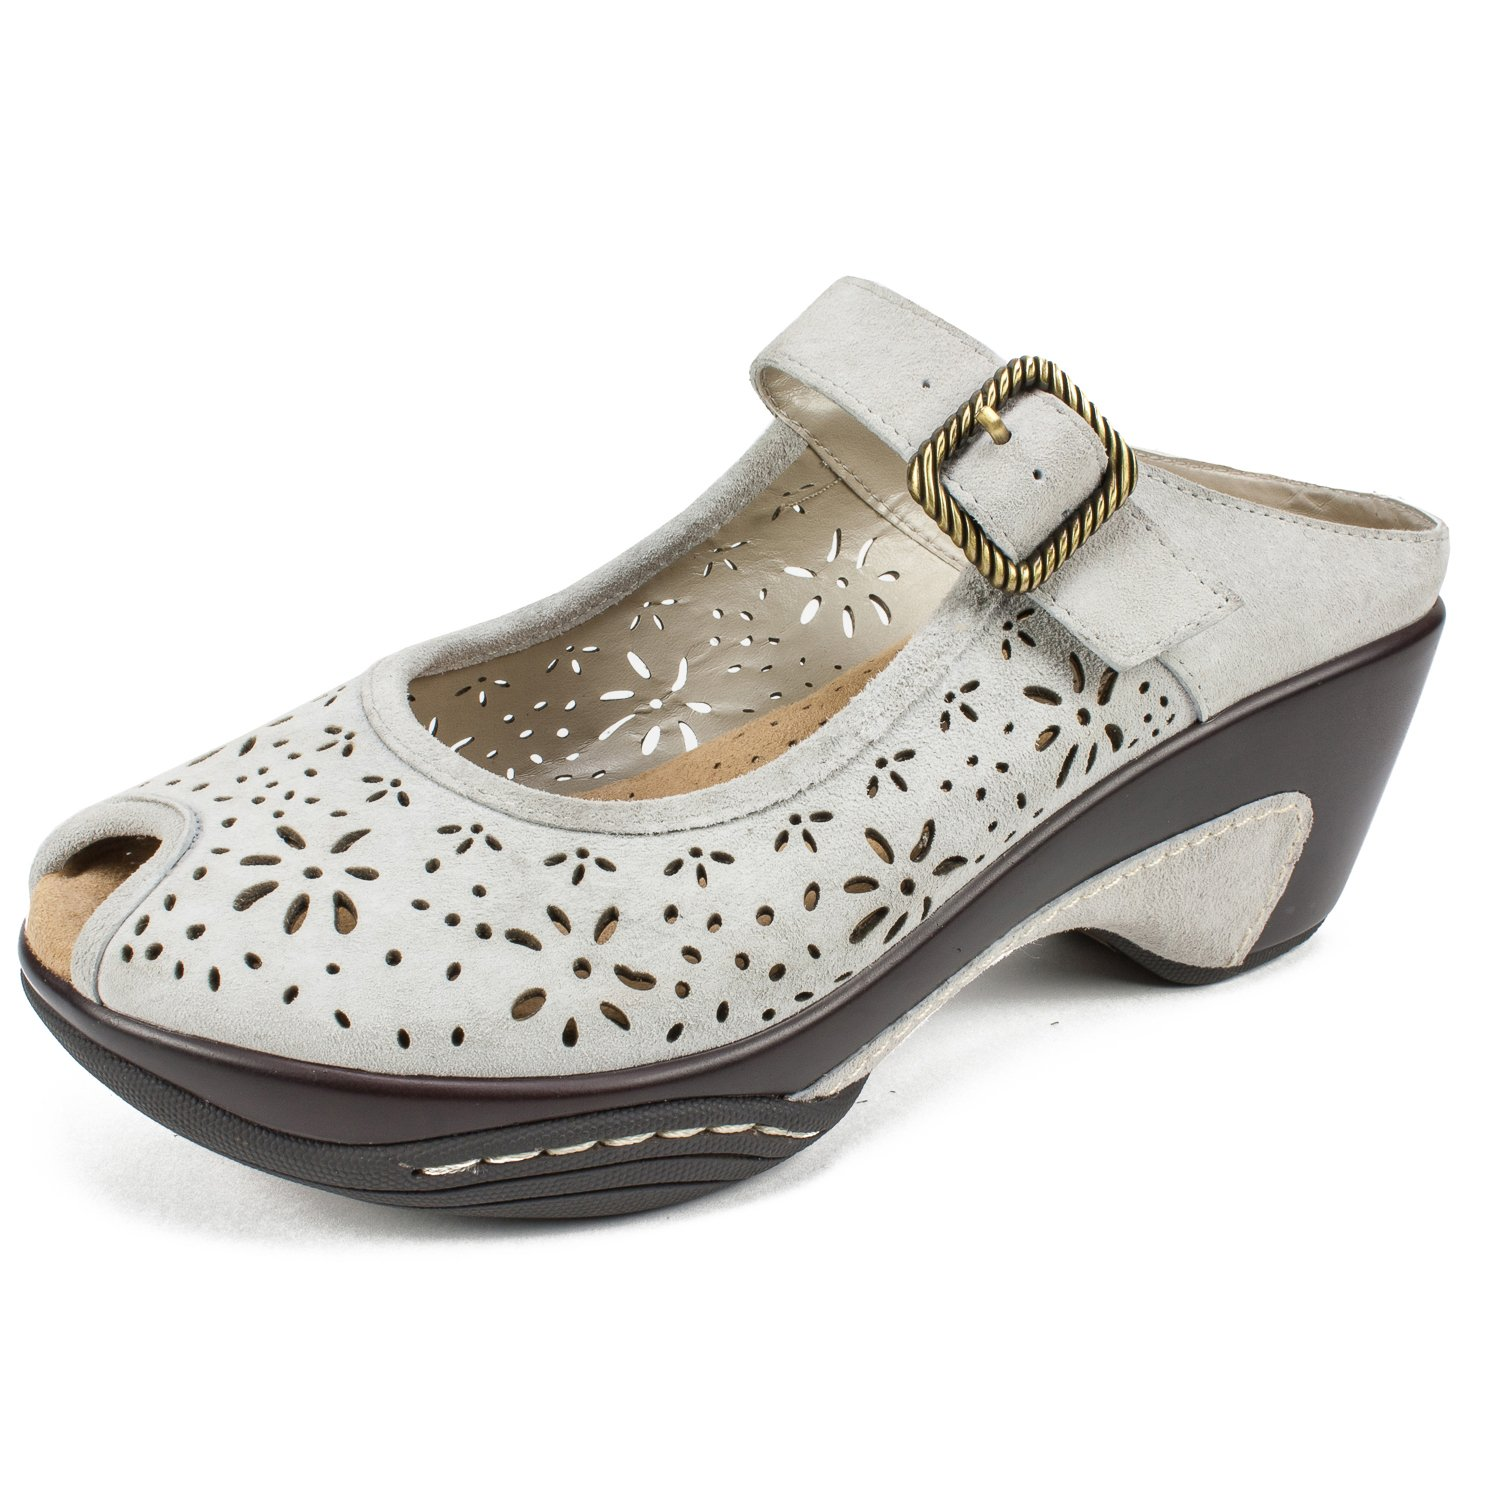 WHITE MOUNTAIN 'Miso' Women's Leather Mule